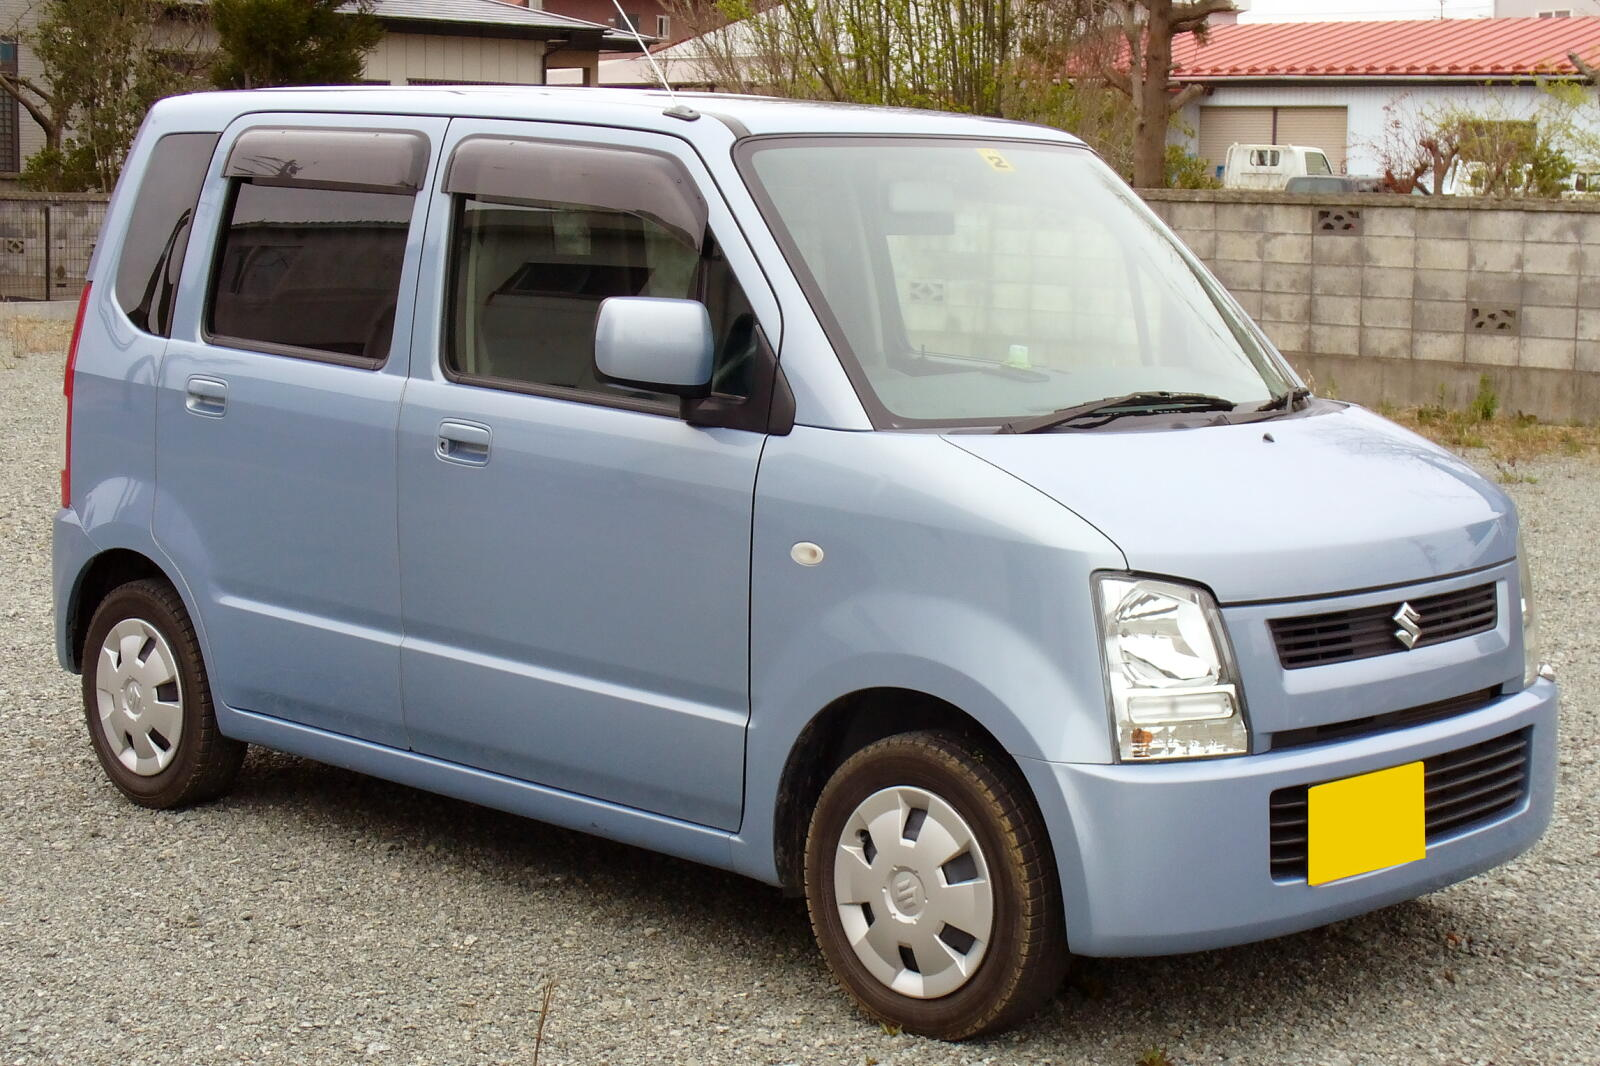 Suzuki Wagon R I 1993 - 1998 Hatchback 5 door #3